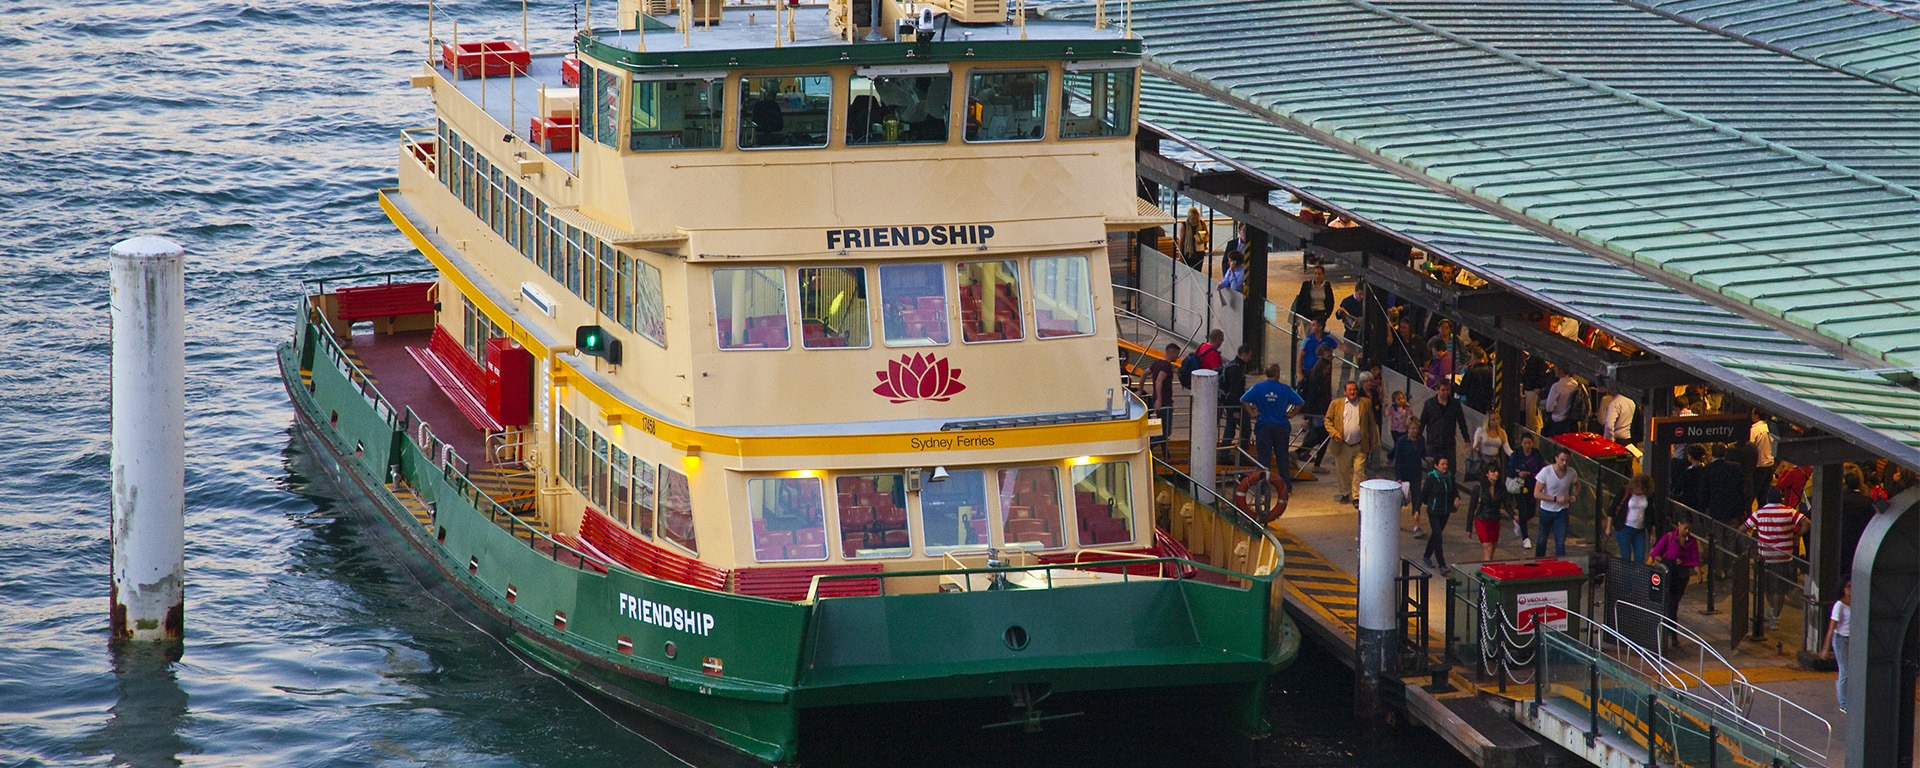 On water mobility solutions - Maritime and ferry ...